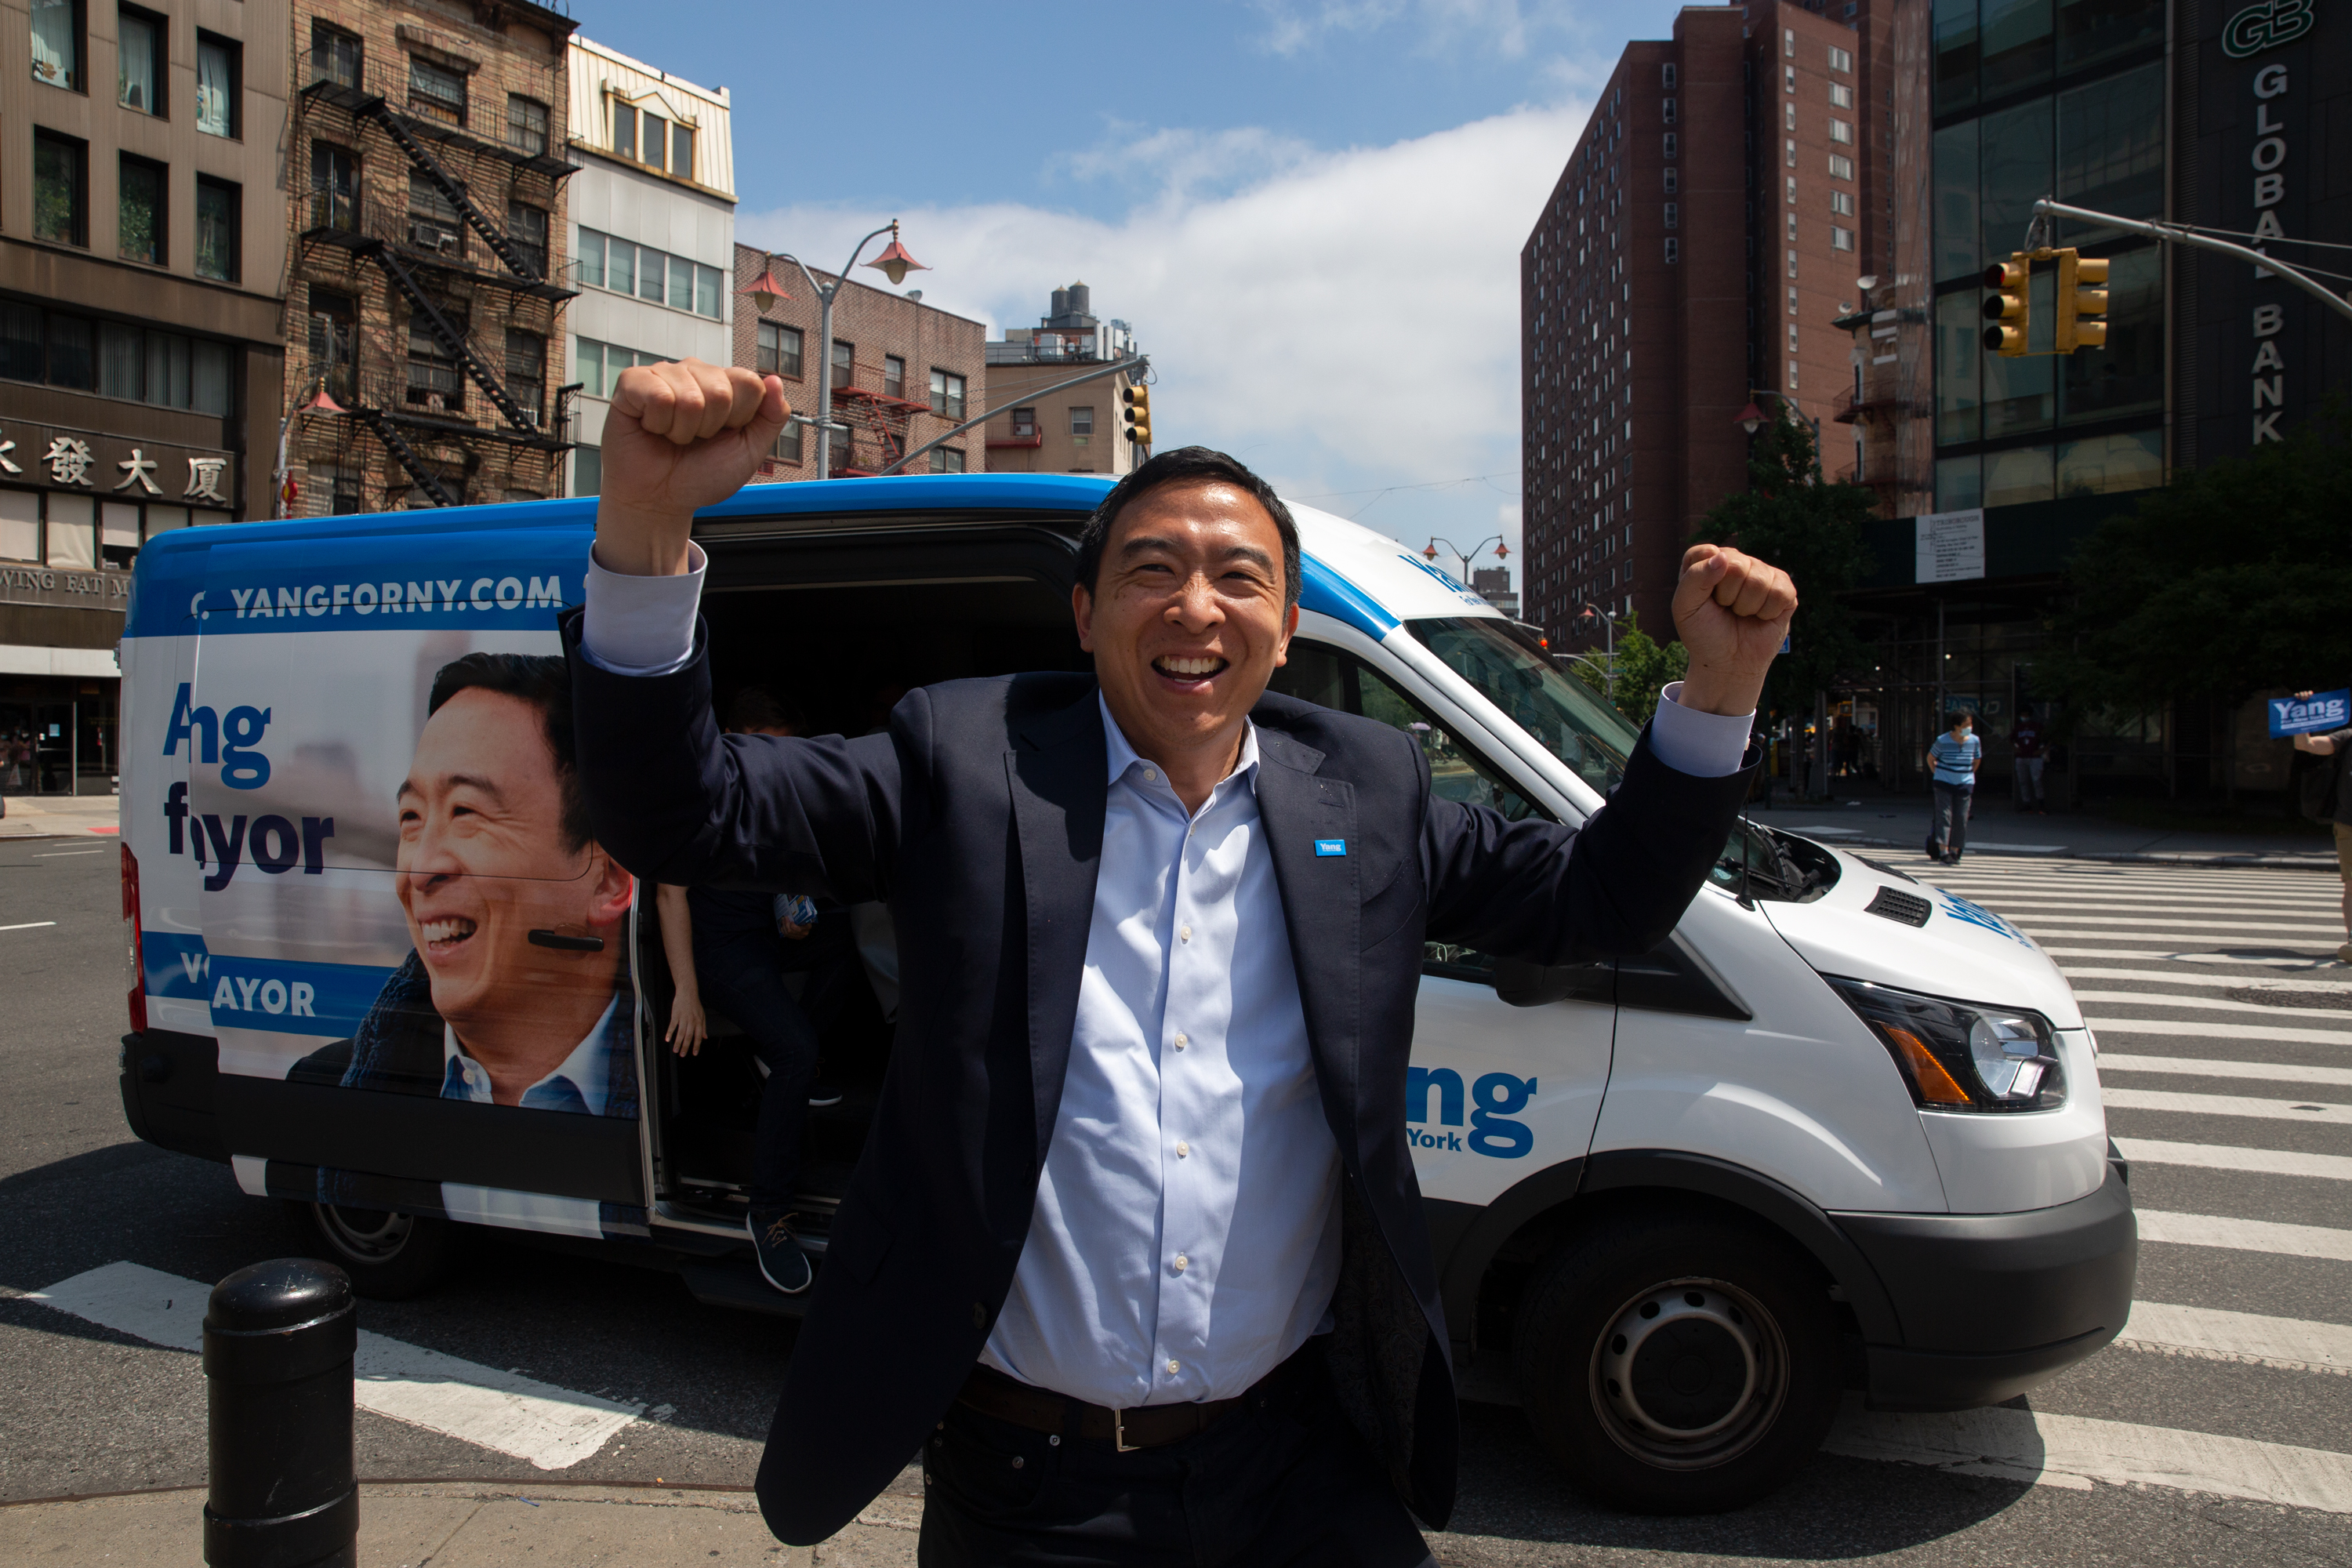 Andrew Yang campaigns in Manhattan's Chinatown on the last day before the mayoral primary, June 21, 2021.